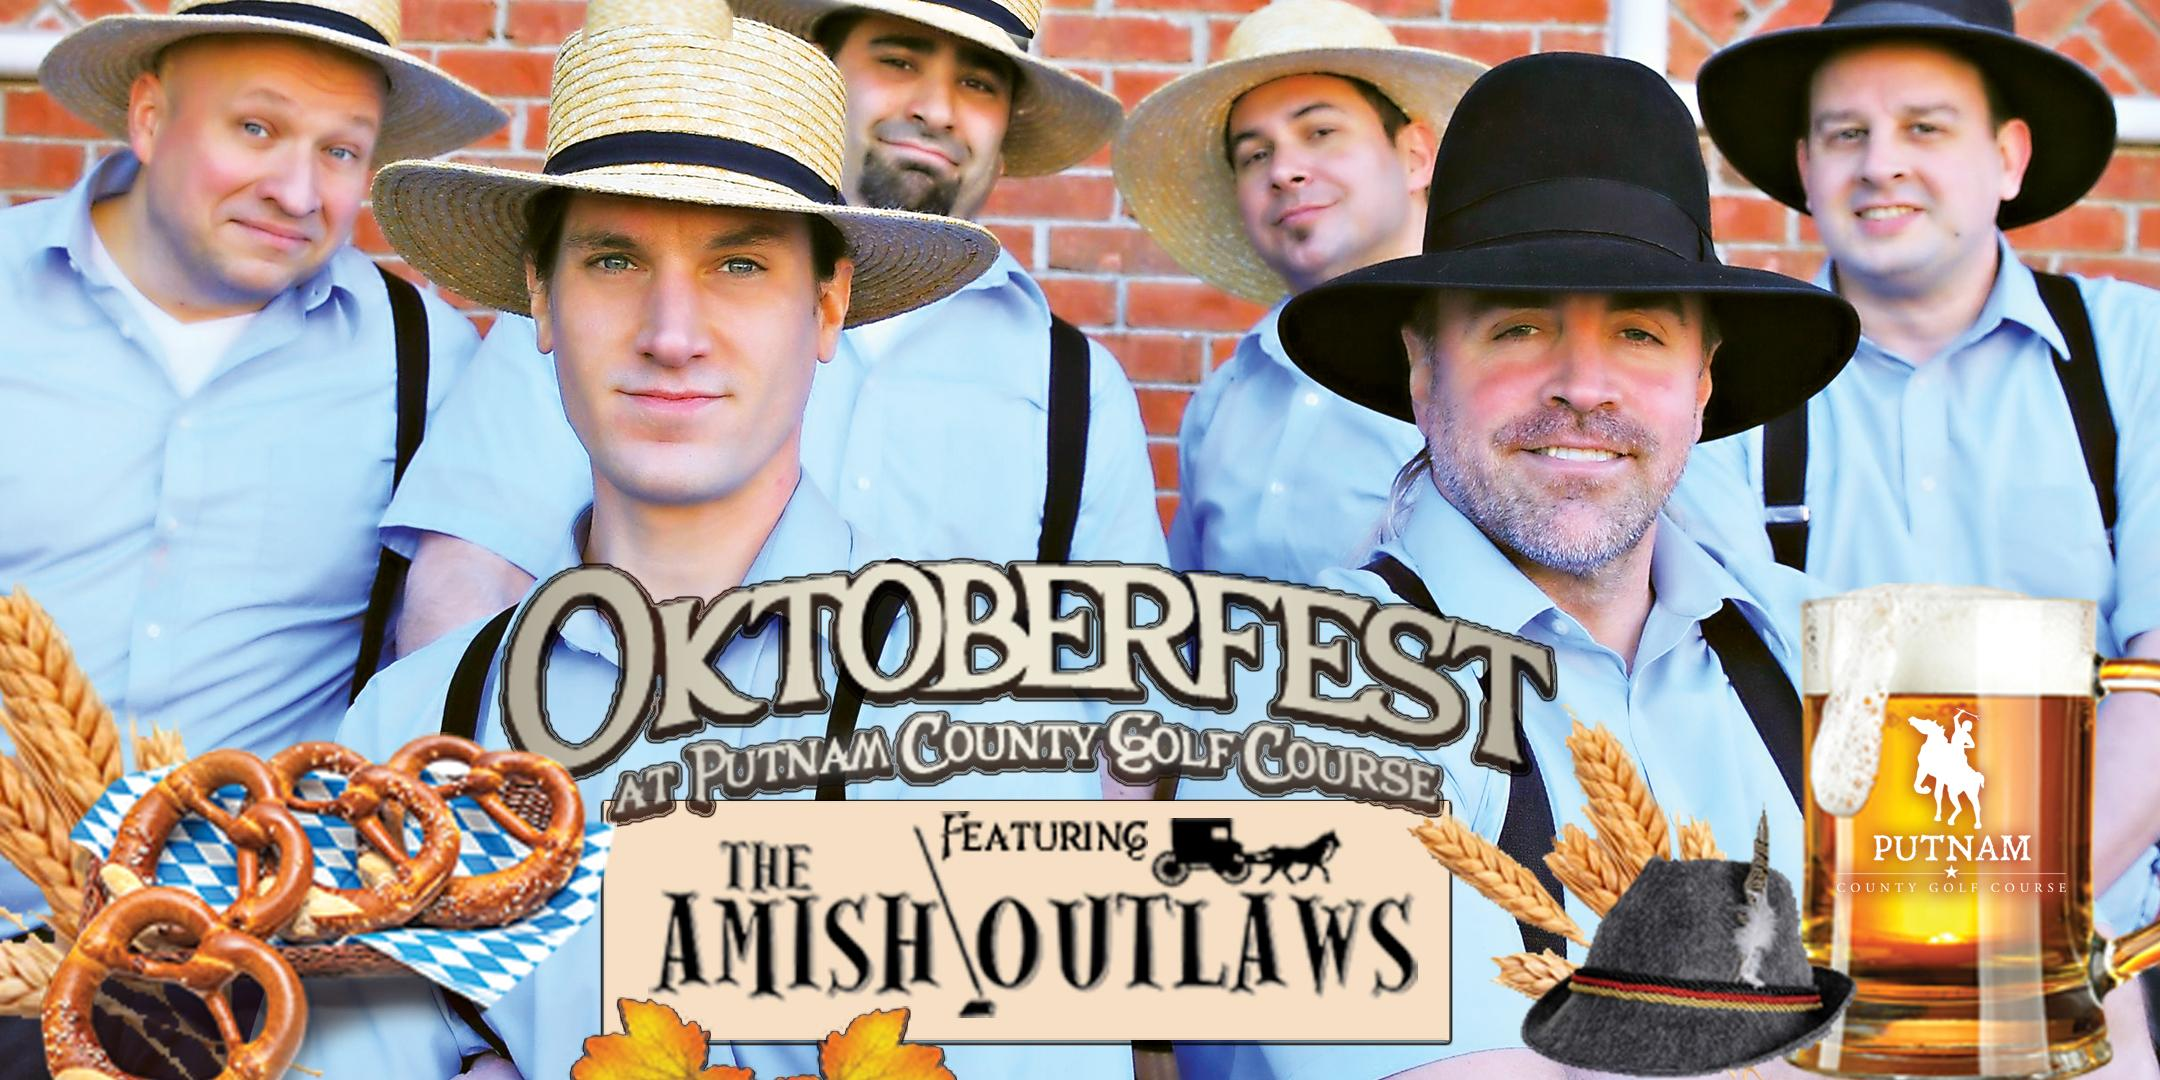 Oktoberfest 2021 at Putnam County Golf Course with